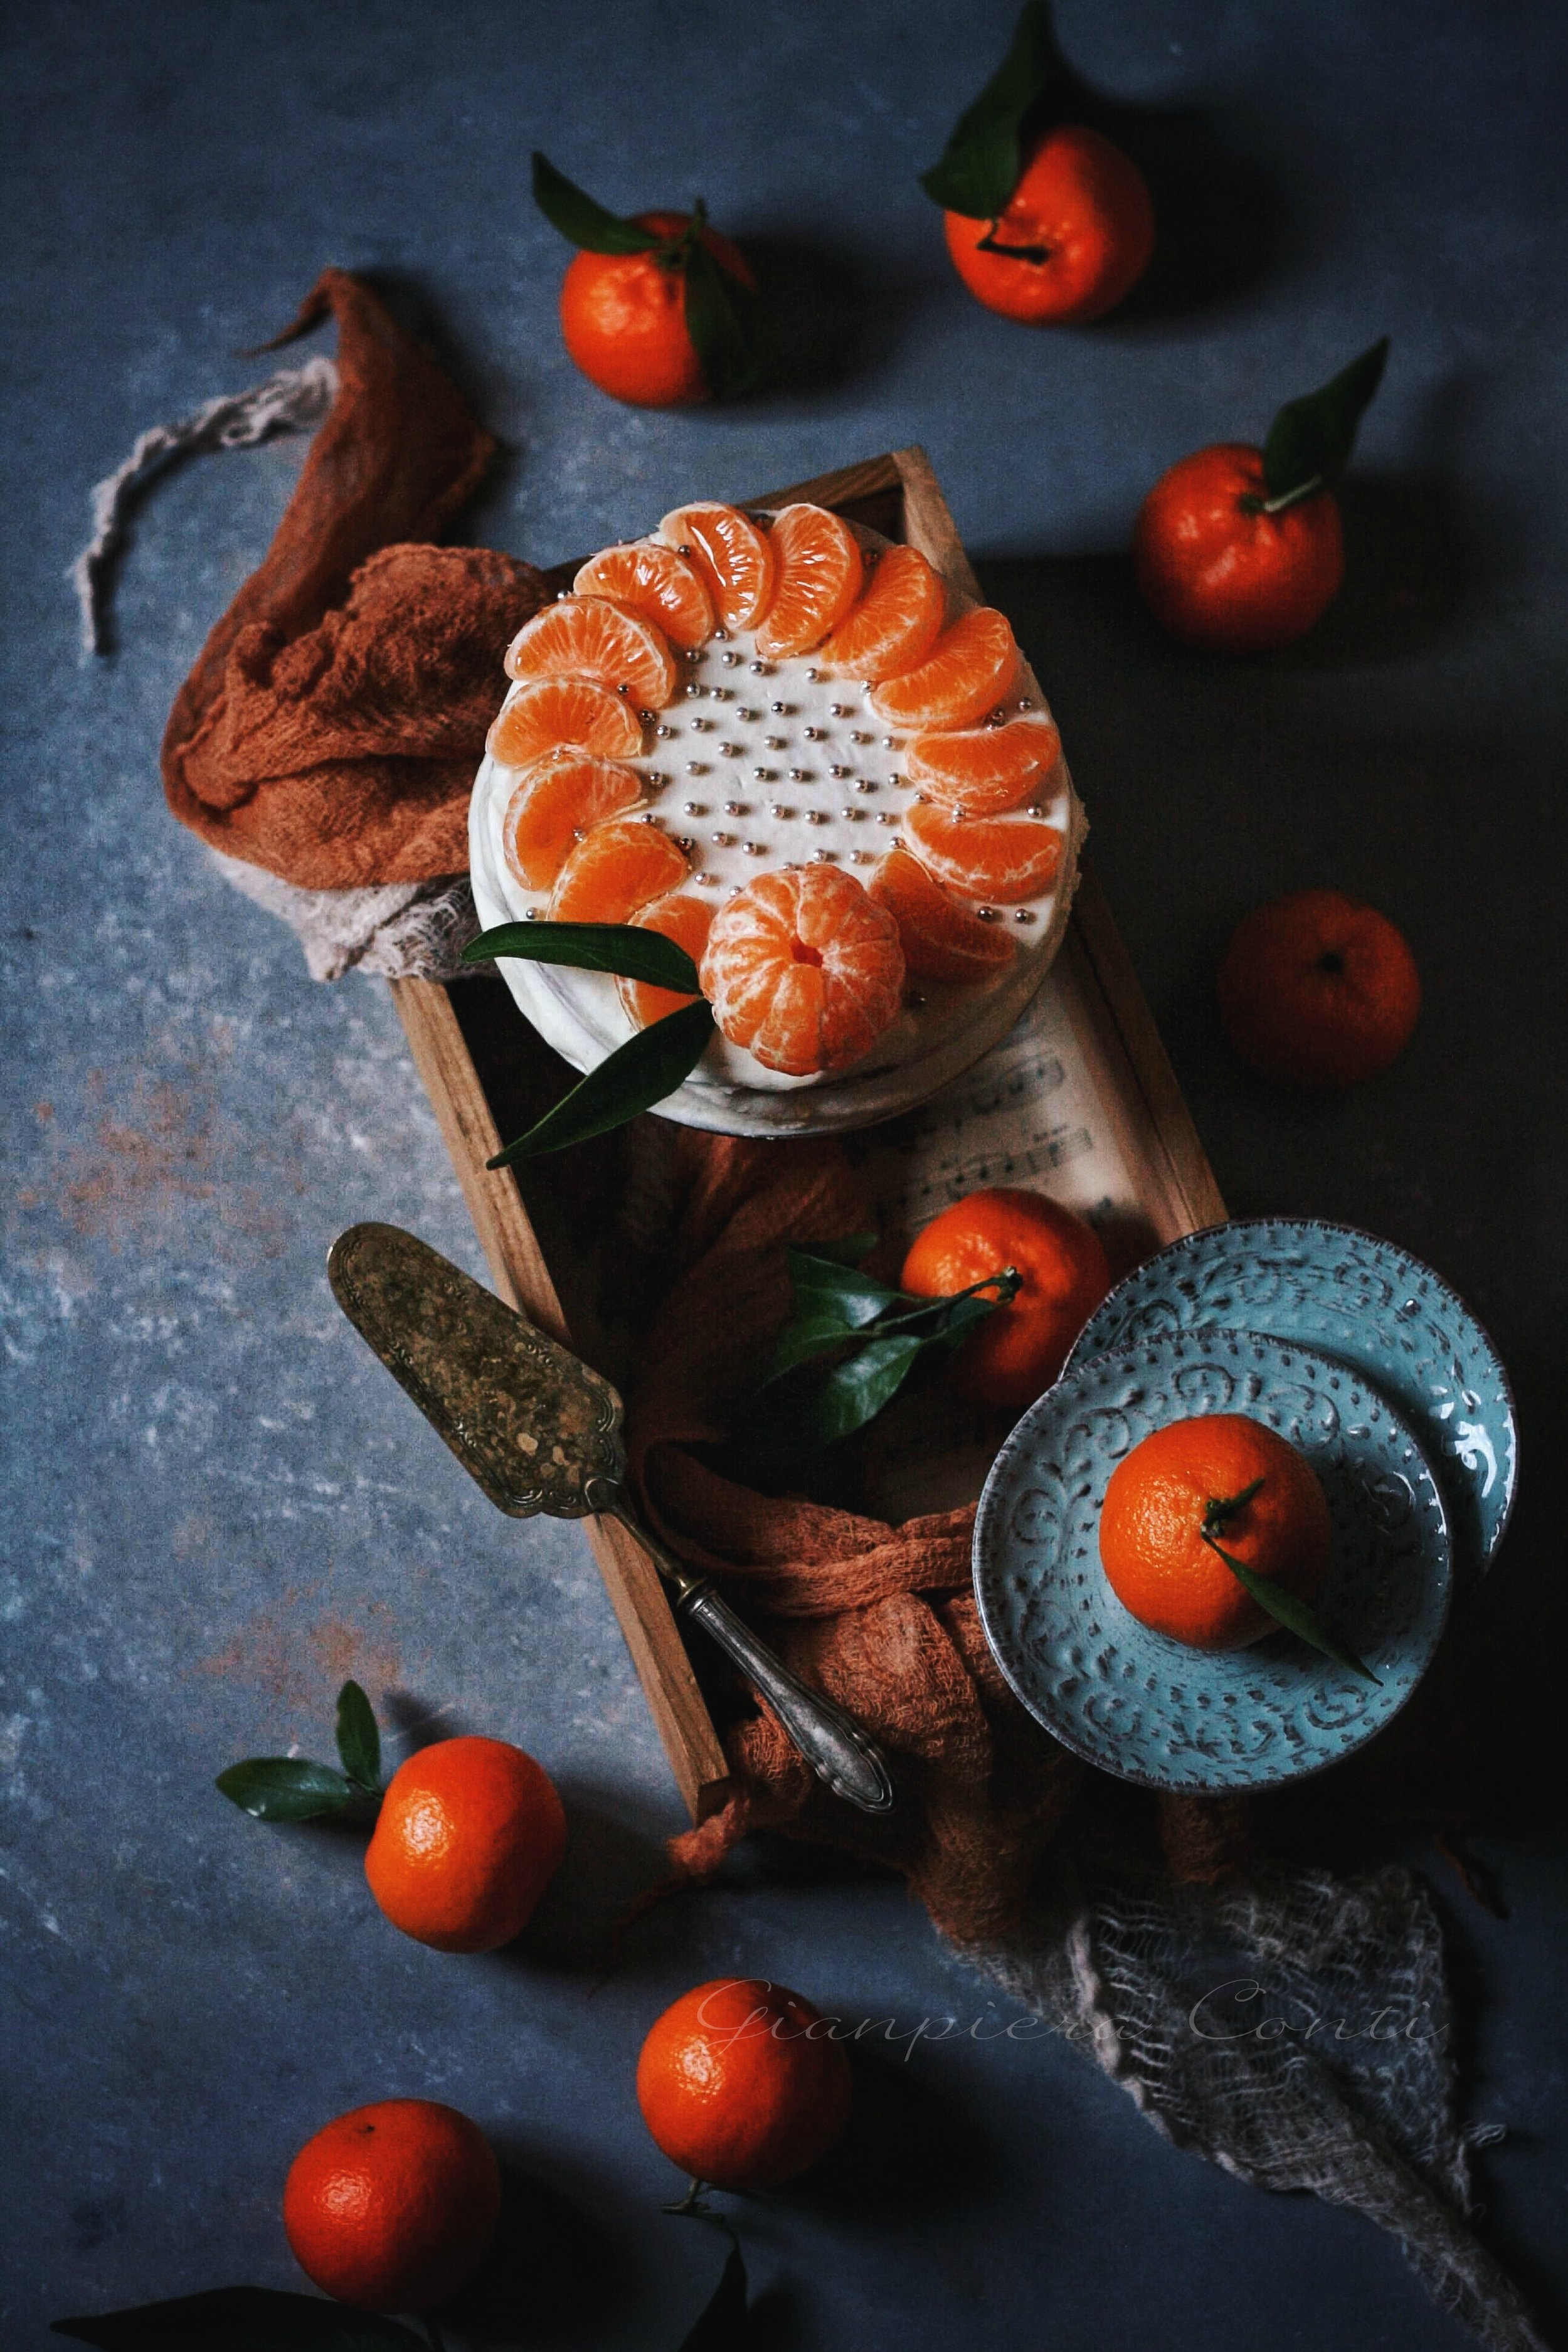 1-2-1 Coaching session - Food styling and visual storytelling - WHERE?Boulogne, 92100, France - (10 minutes far from Paris)DURATION6 hours (10am - 16pm)TOPICS WE WILL COVEROverview of your portfolio or Instagram handleFinding your voice Taking photos in natural lightAdvice about styling, composition and lightUse of backdrops and props (tableware, flowers, paper props)Choice of complementary colorsHow to set up a food scene using a variety of props and backdrops to create the mood you preferShooting in actionTips to improve the quality of your images through apps (Snapseed, VSCO, Lightroom)Creative initiation to a topic of your choice (Backdrops or Paper art).WHAT TO BRINGYour DSLR and/or a smartphone with a working camera NOTELunch, drinks and smiles includedPlease, for further information about this workshop do not hesitate to contact me at goodlifeoclock@hotmail.com